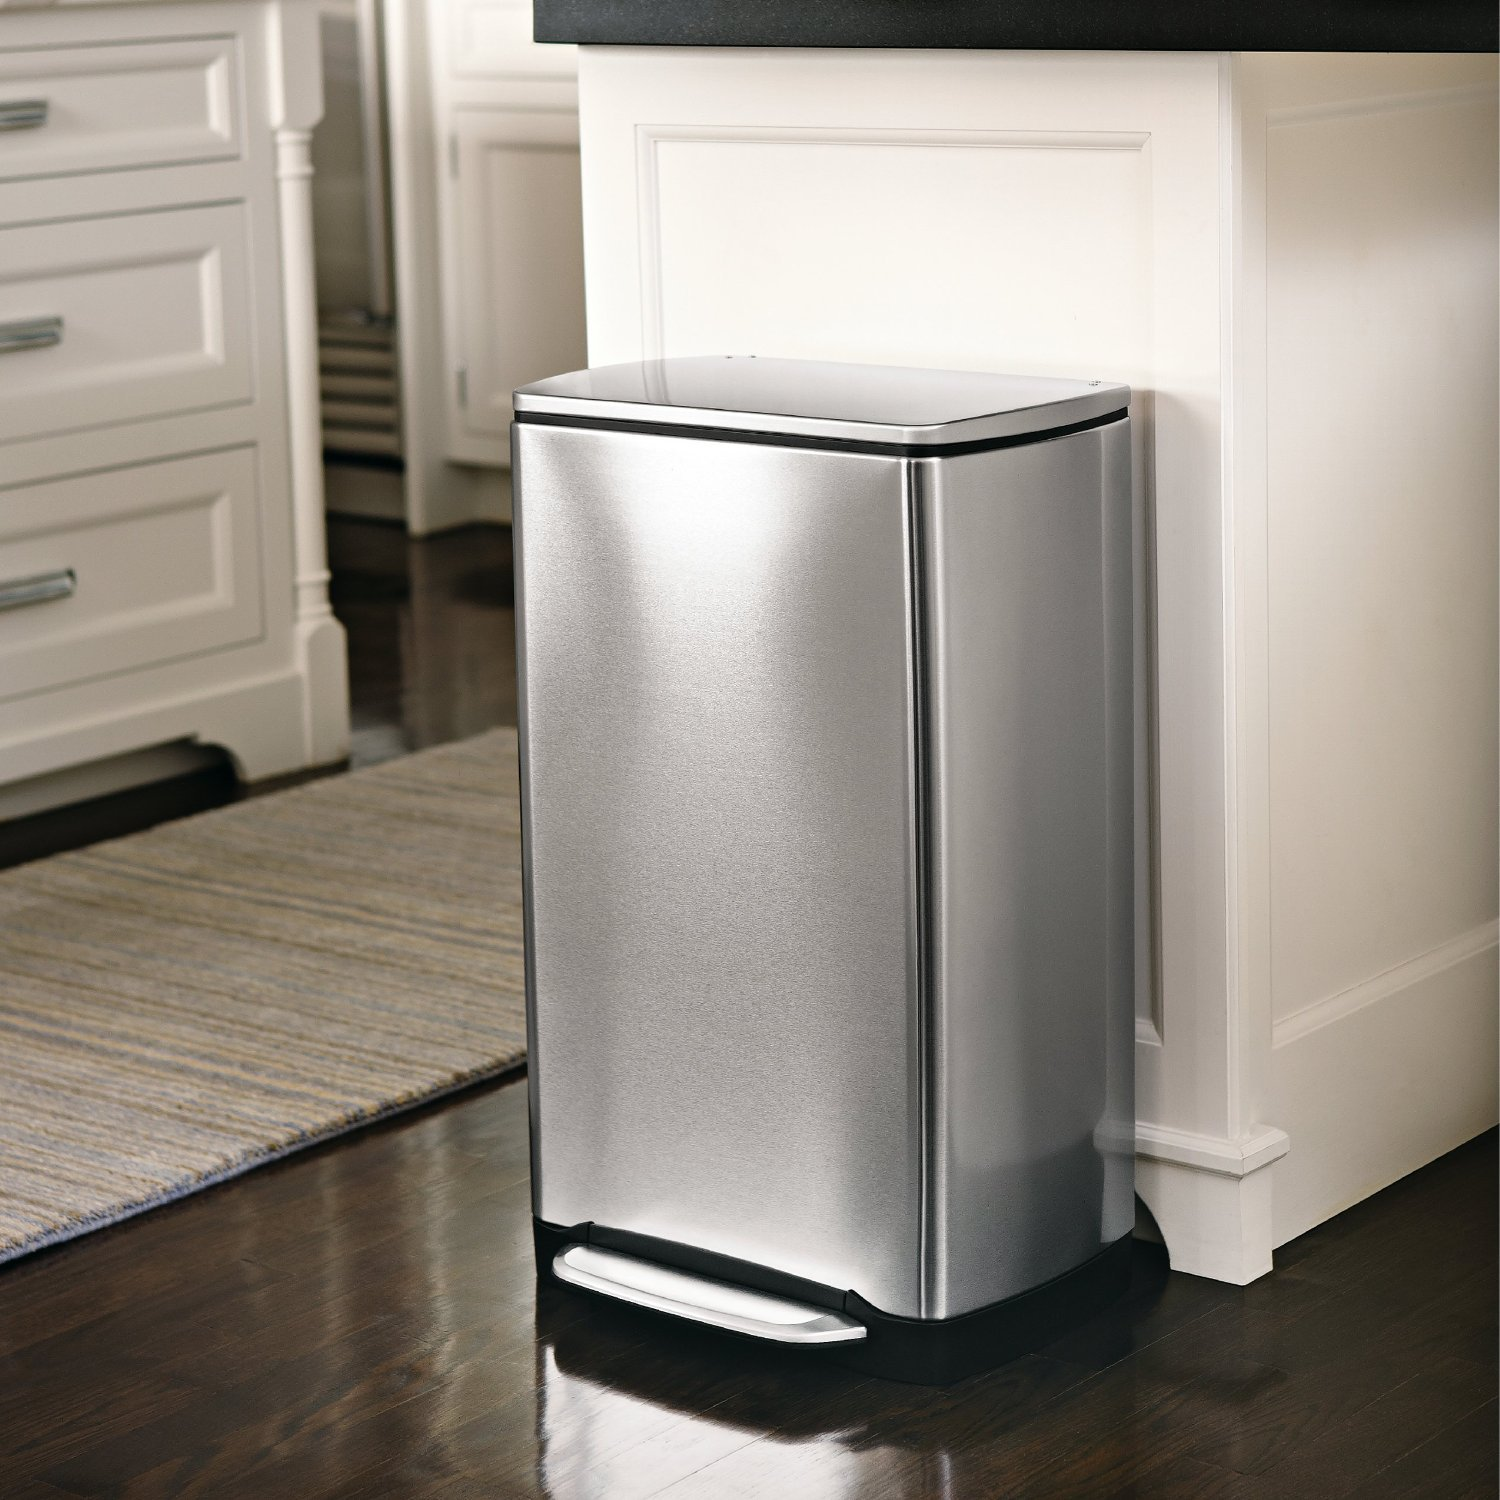 poubelle simplehuman 50 l poubelle simplehuman 50 l simplehuman wide pedal trash can. Black Bedroom Furniture Sets. Home Design Ideas